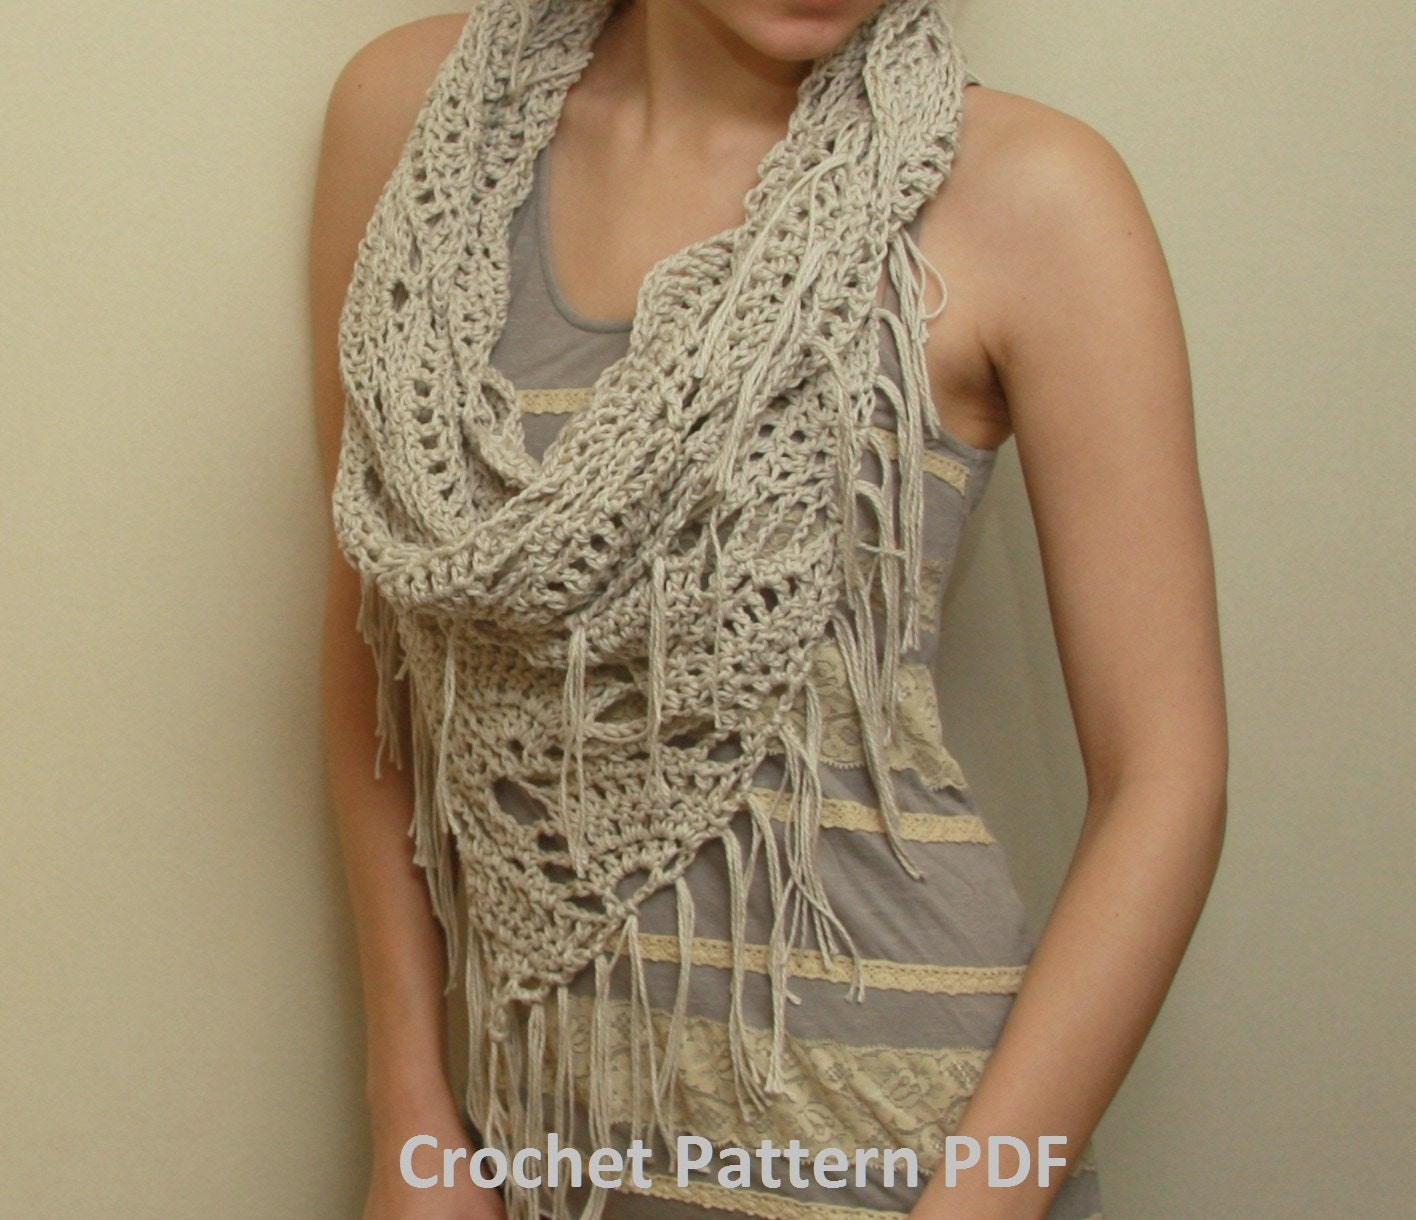 Crochet cowl pattern pdf triangle cowl electronic pdf file this is a digital file baditri Images